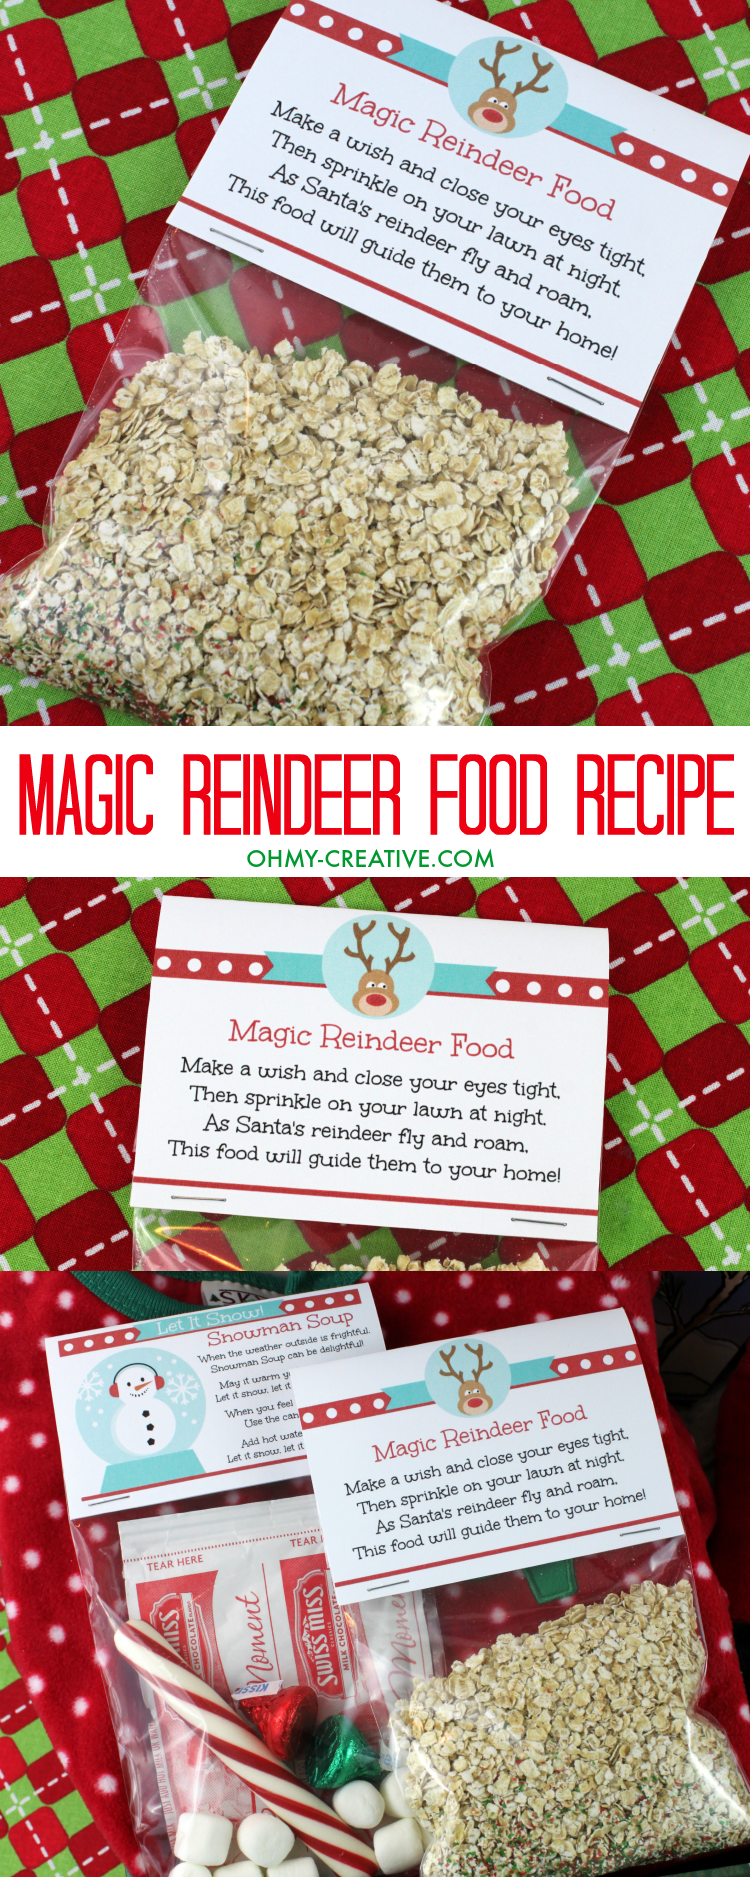 image regarding Reindeer Food Poem Printable referred to as Magic Reindeer Foodstuff Recipe and Printable - Oh My Inventive